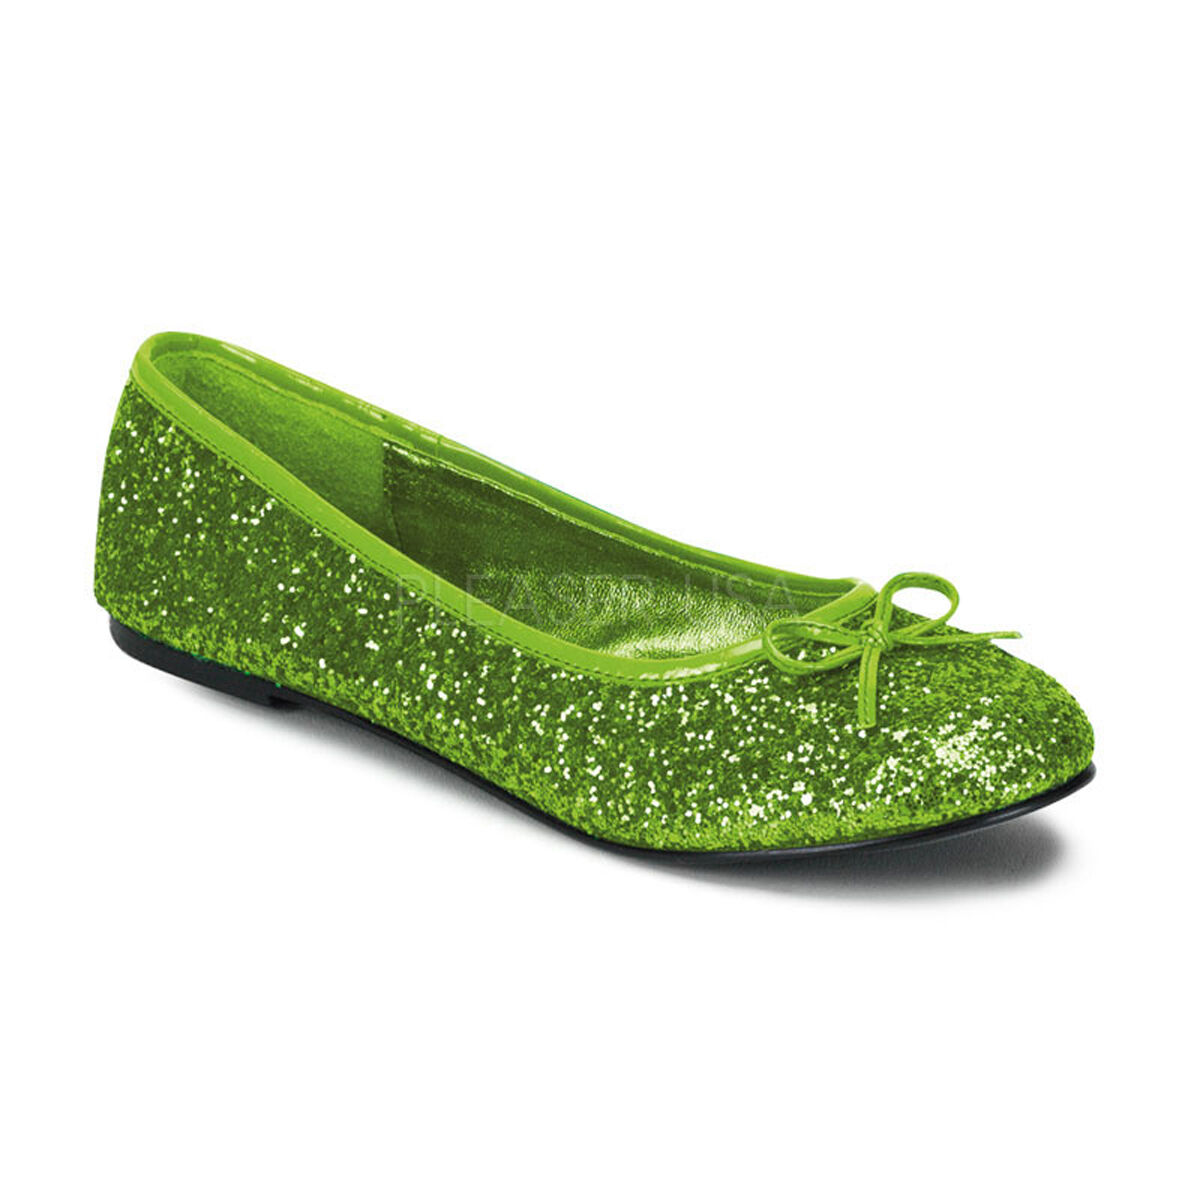 STAR16G LM Women's Basic Classic Sparkle Lime Green Glitter Flats Costume shoes